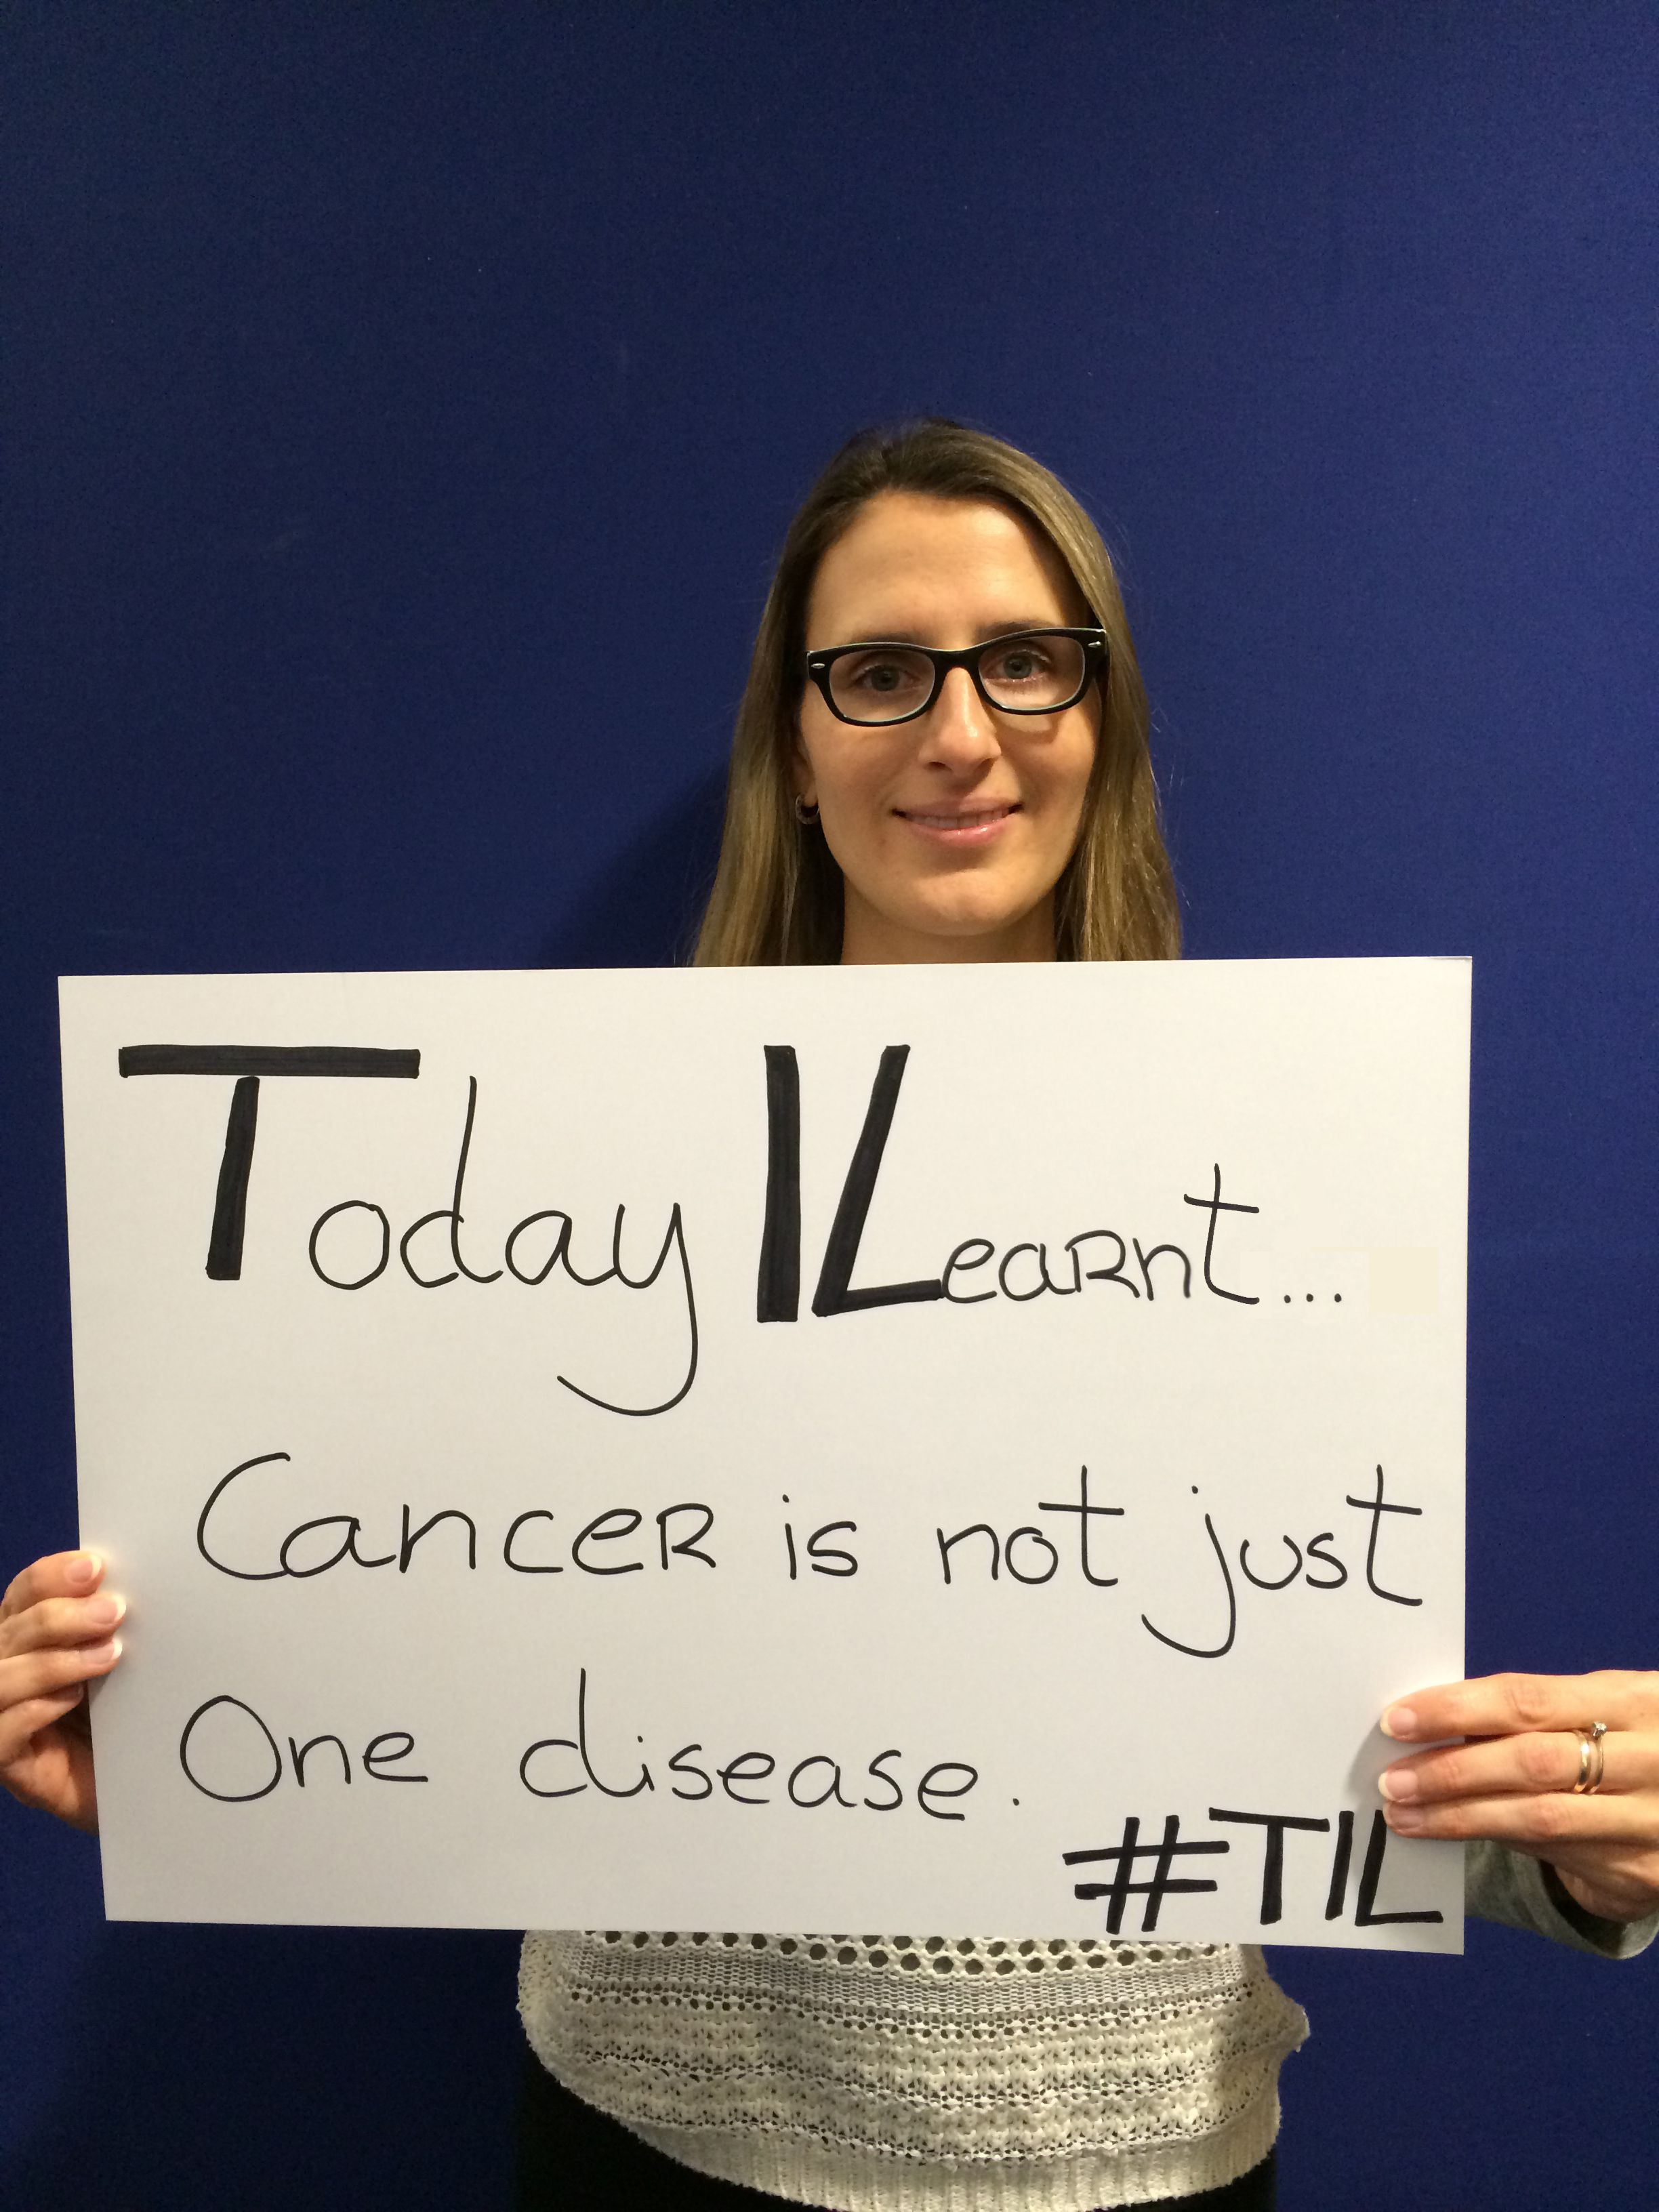 See what Boehringer employees learnt today for #WorldCancerDay